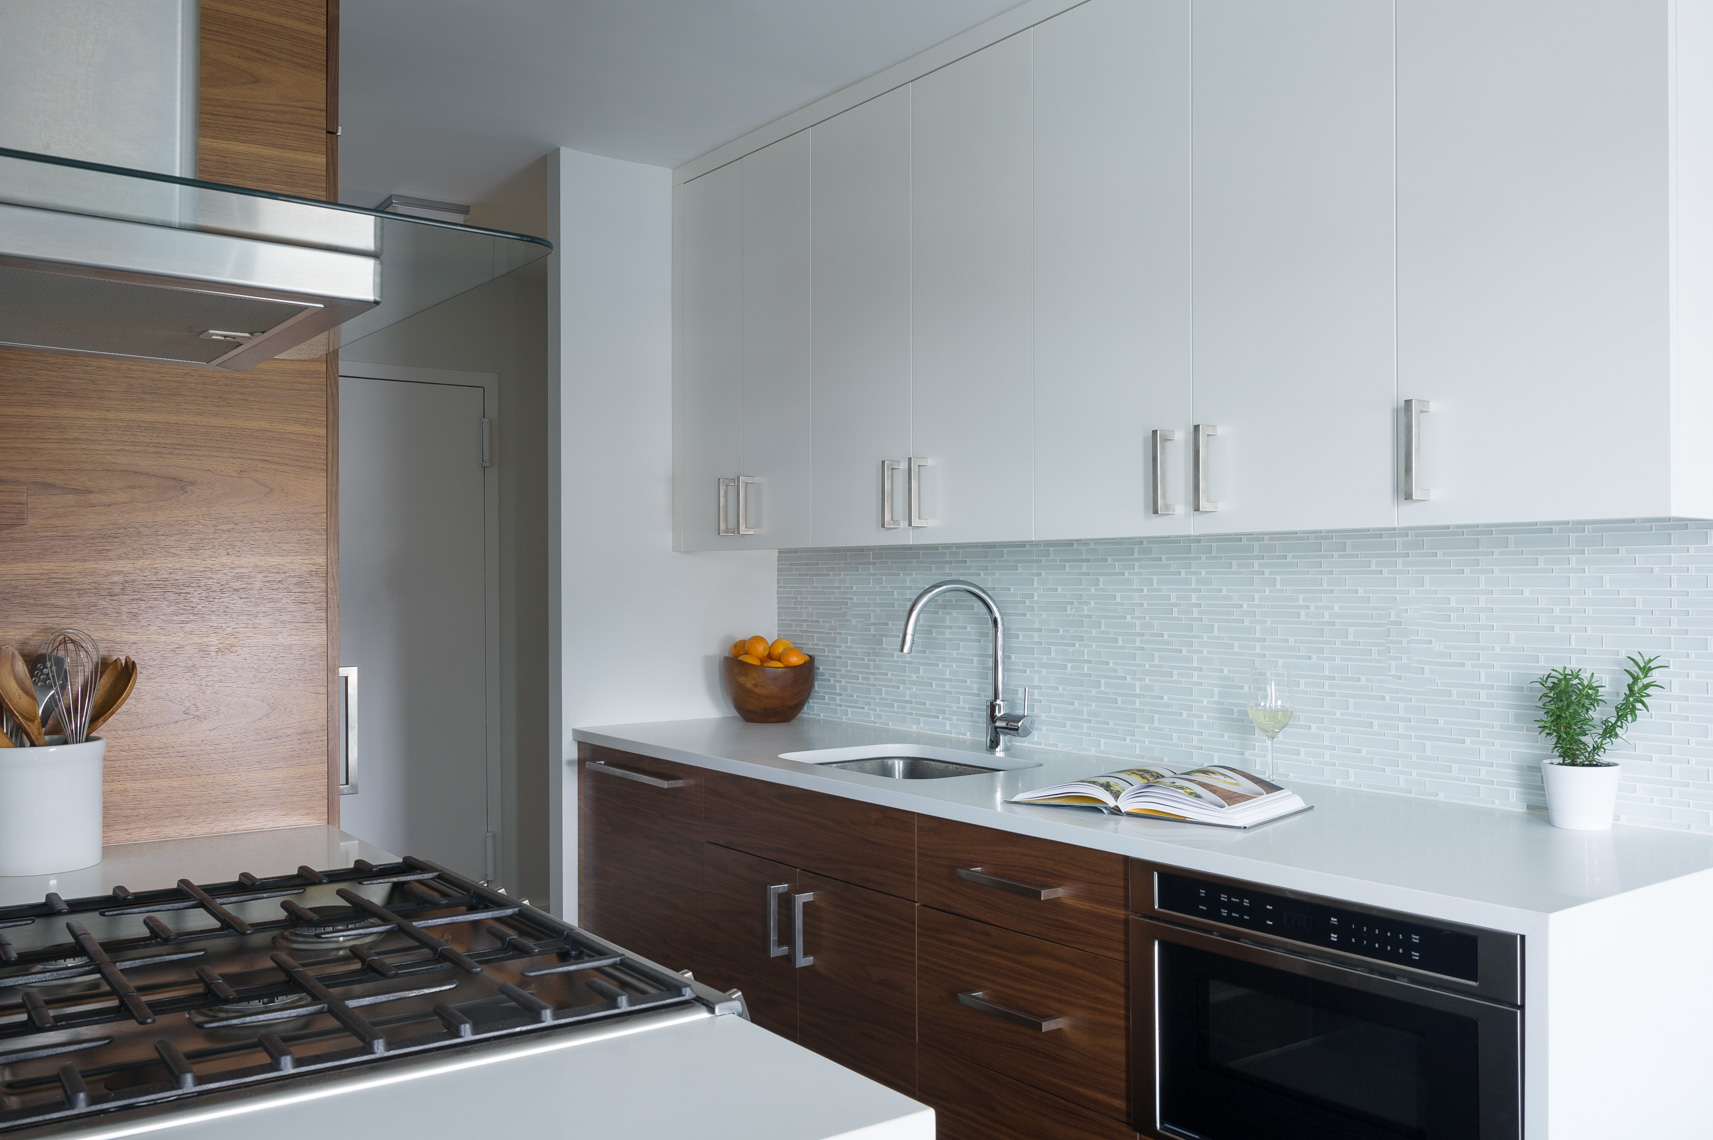 NYC Interior Photographer - Homepolish Interior Kitchen